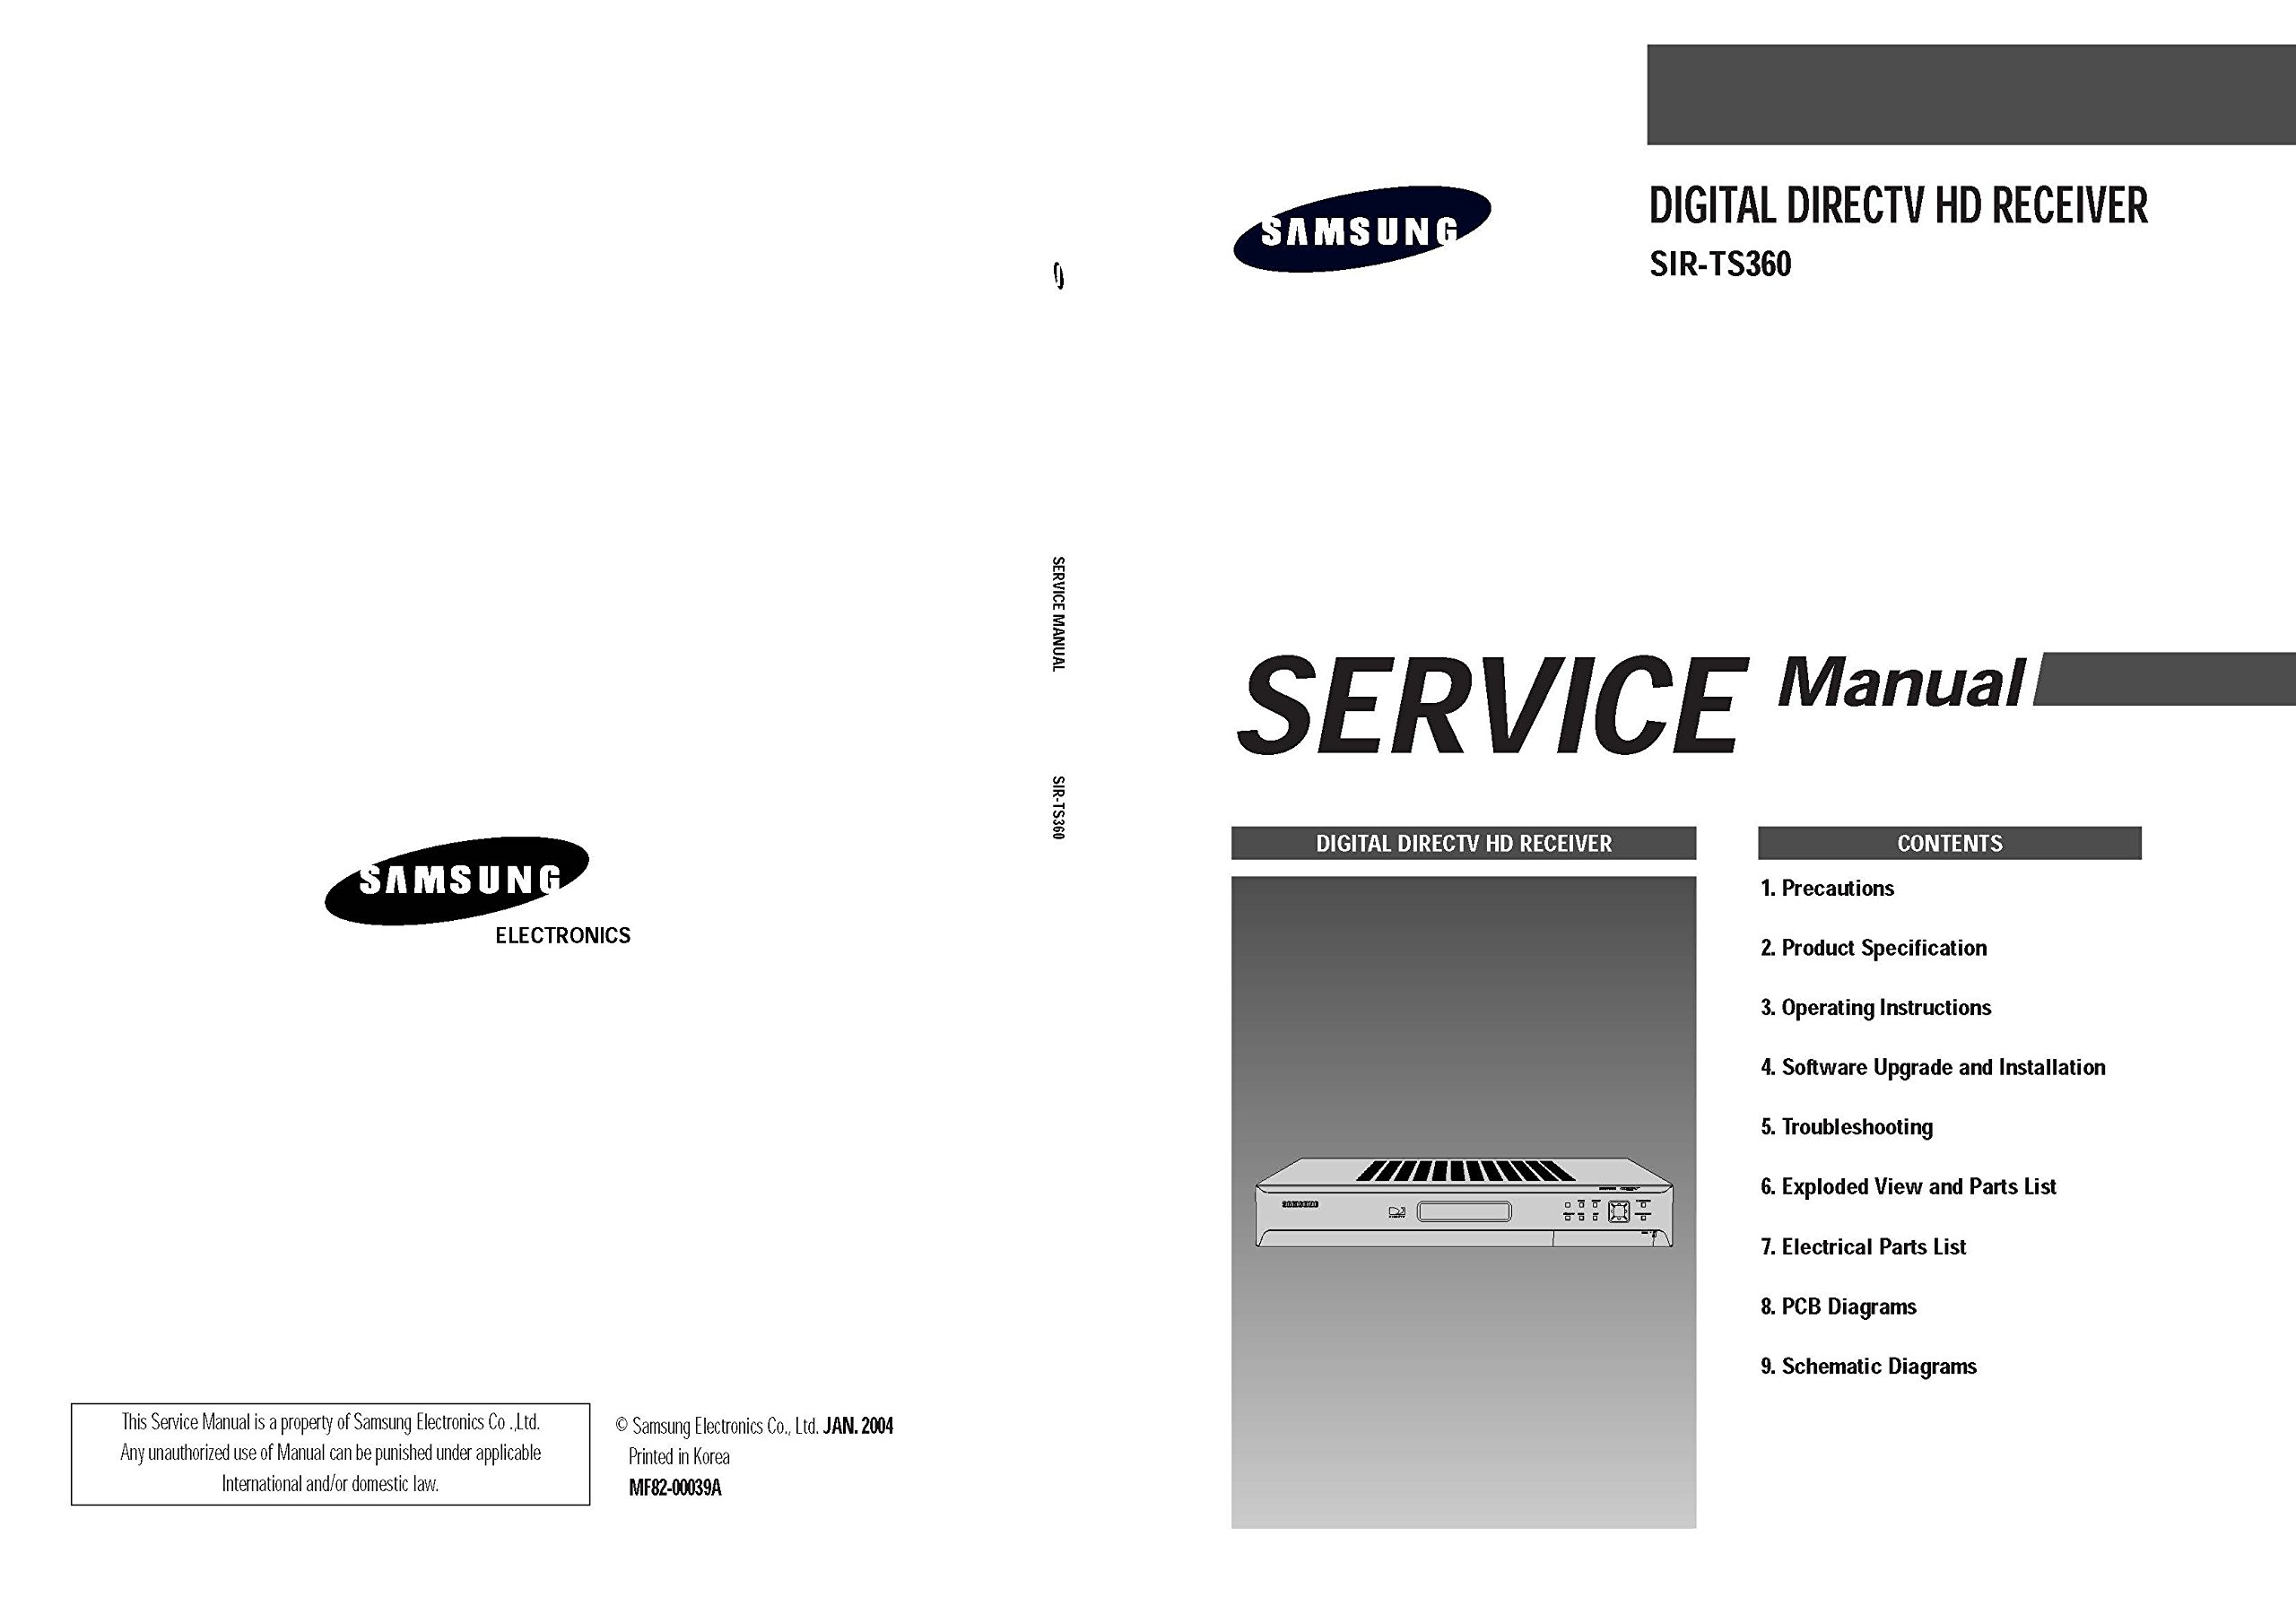 Samsung sir-ts360 owner's manual pdf download.